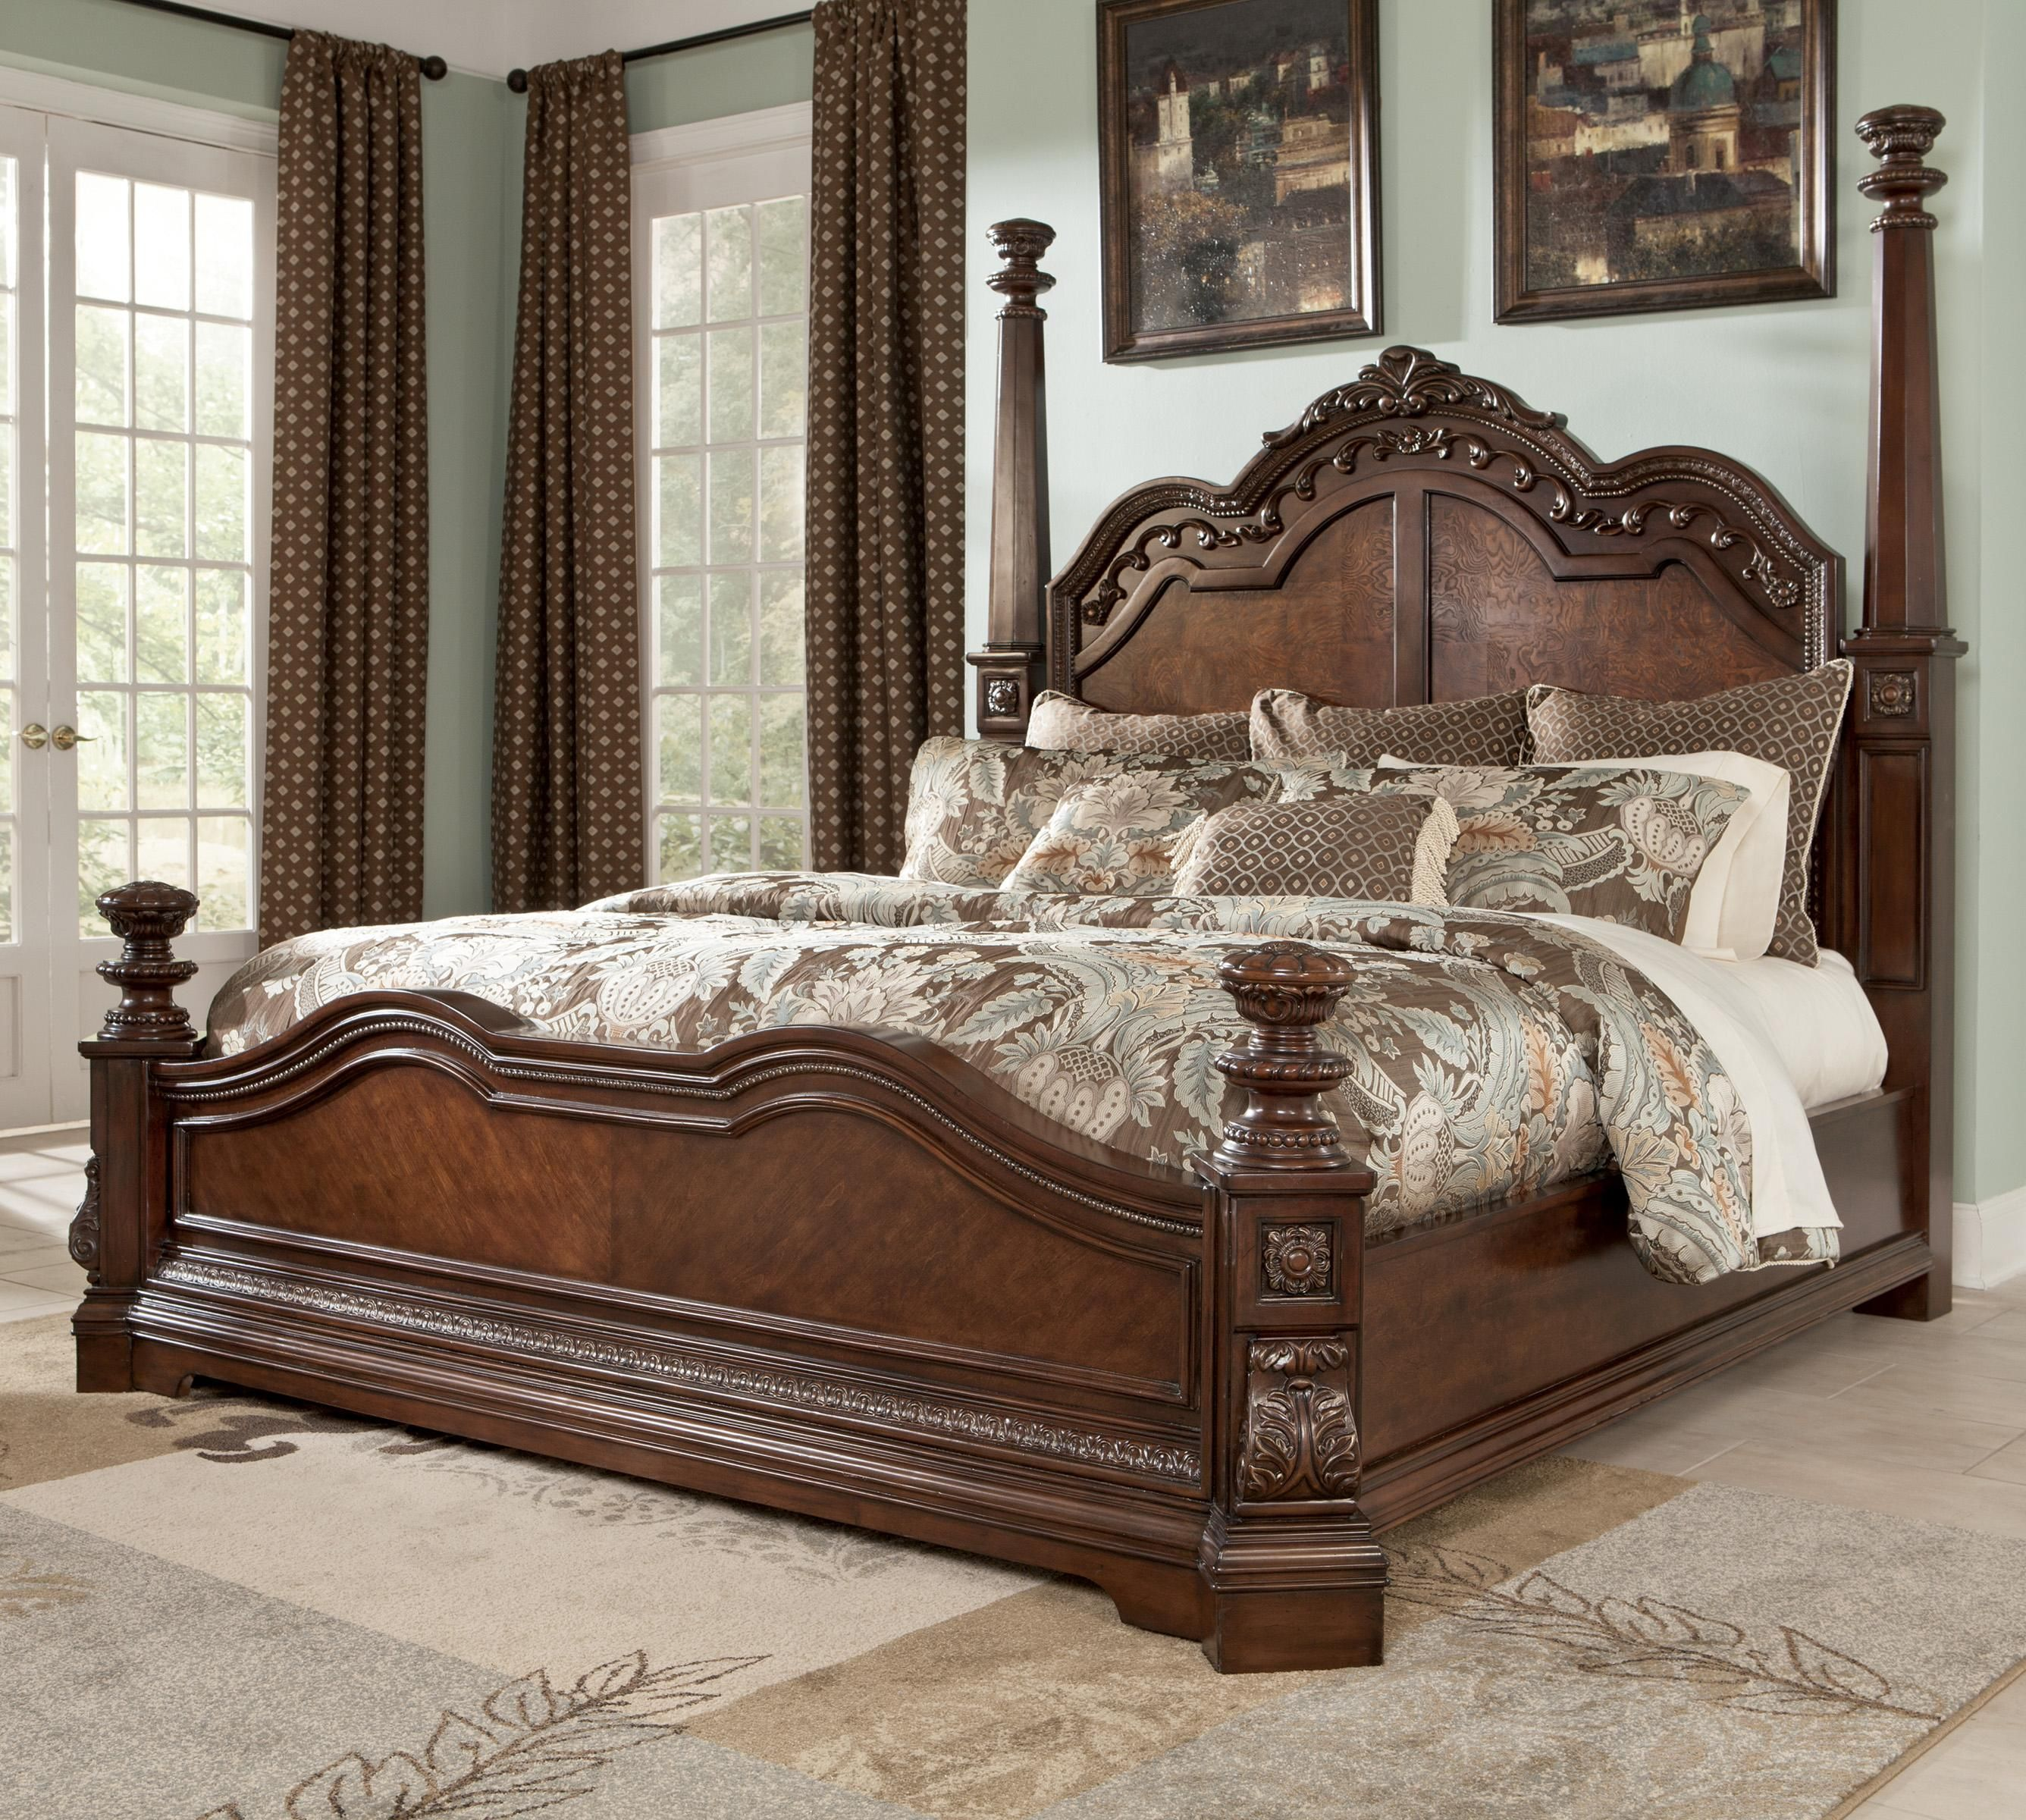 San Mateo Bedroom Furniture Pulaski San Mateo Bedroom Set Amelia Upholstered Bedroom Set